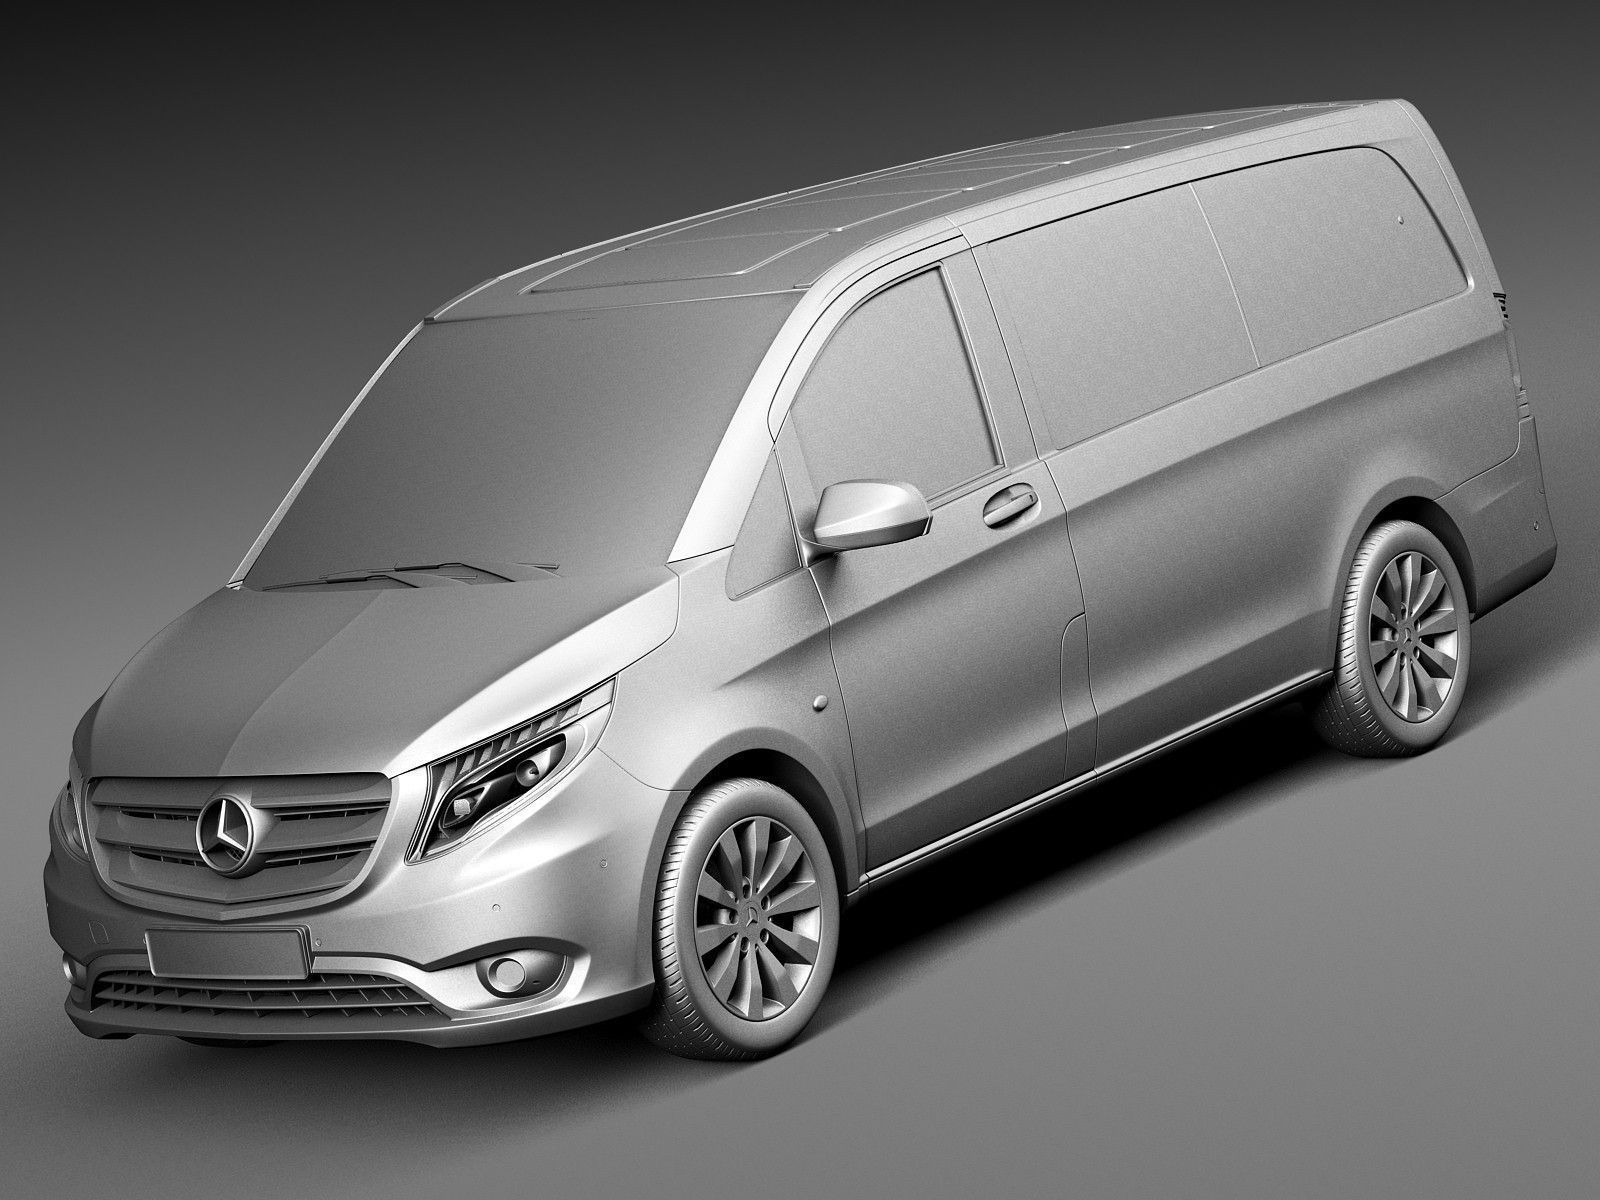 mercedes benz vito tourer 2016 3d model max obj 3ds fbx. Black Bedroom Furniture Sets. Home Design Ideas